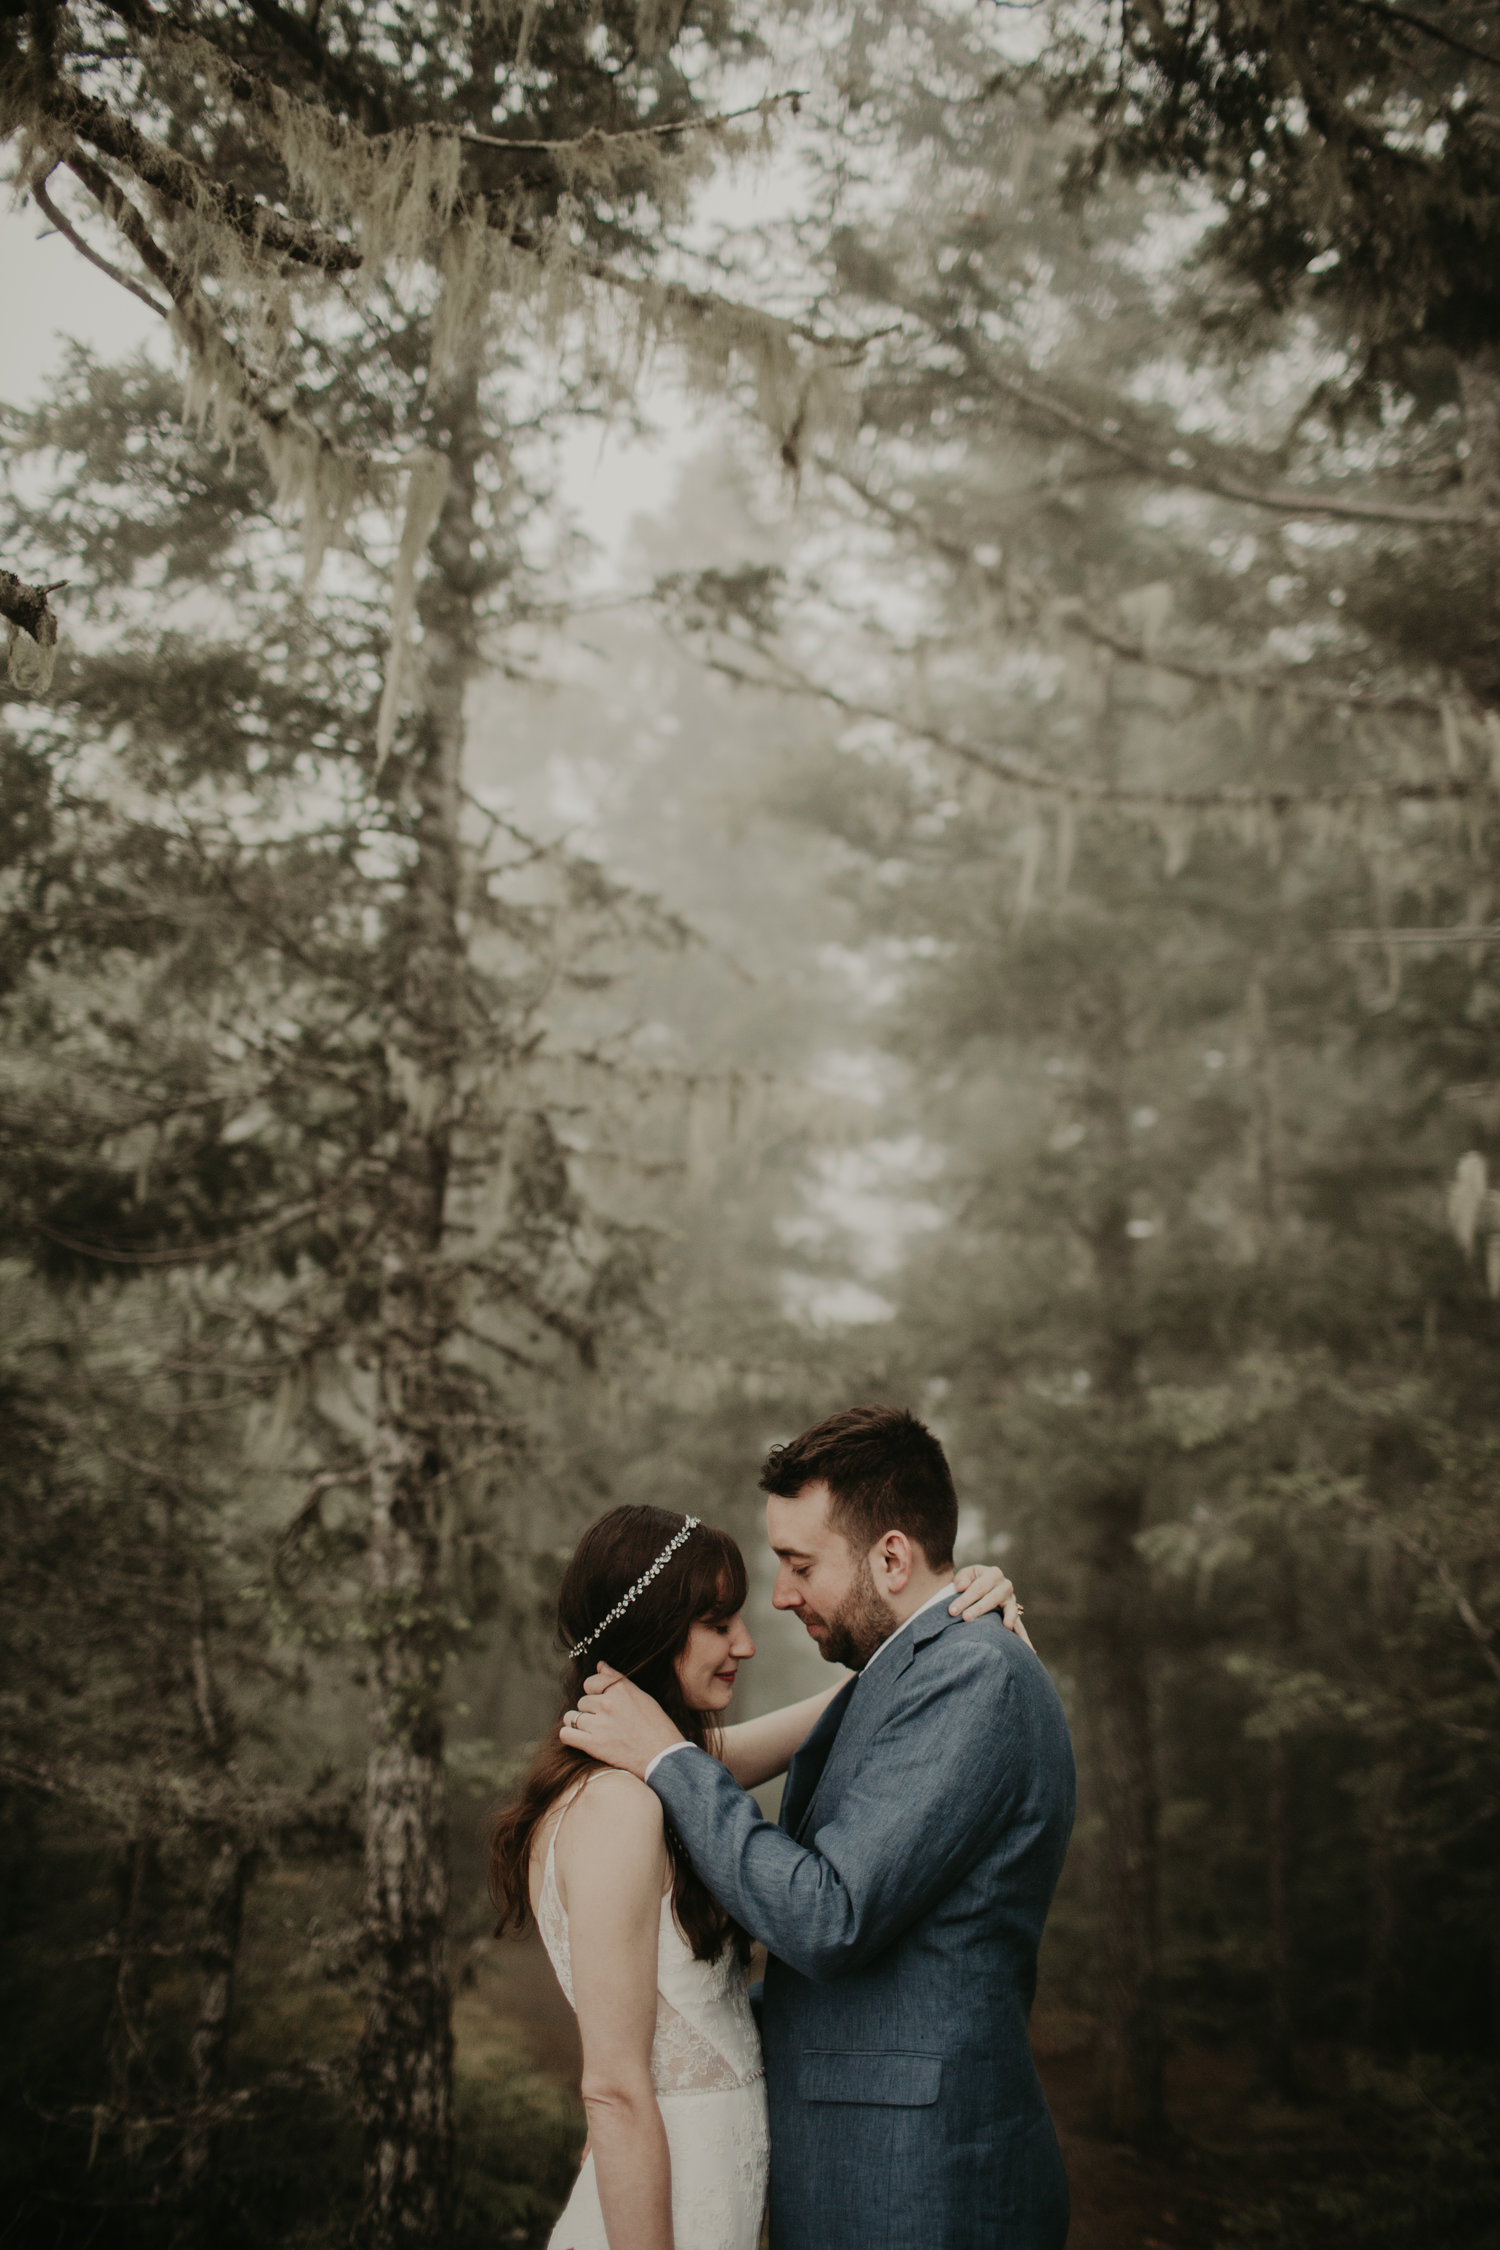 PNW-elopement-wedding-engagement-olympic+national+park-port+angeles-hurricane+ridge-lake+crescent-kayla+dawn+photography-+photographer-photography-kayladawnphoto-165.jpg